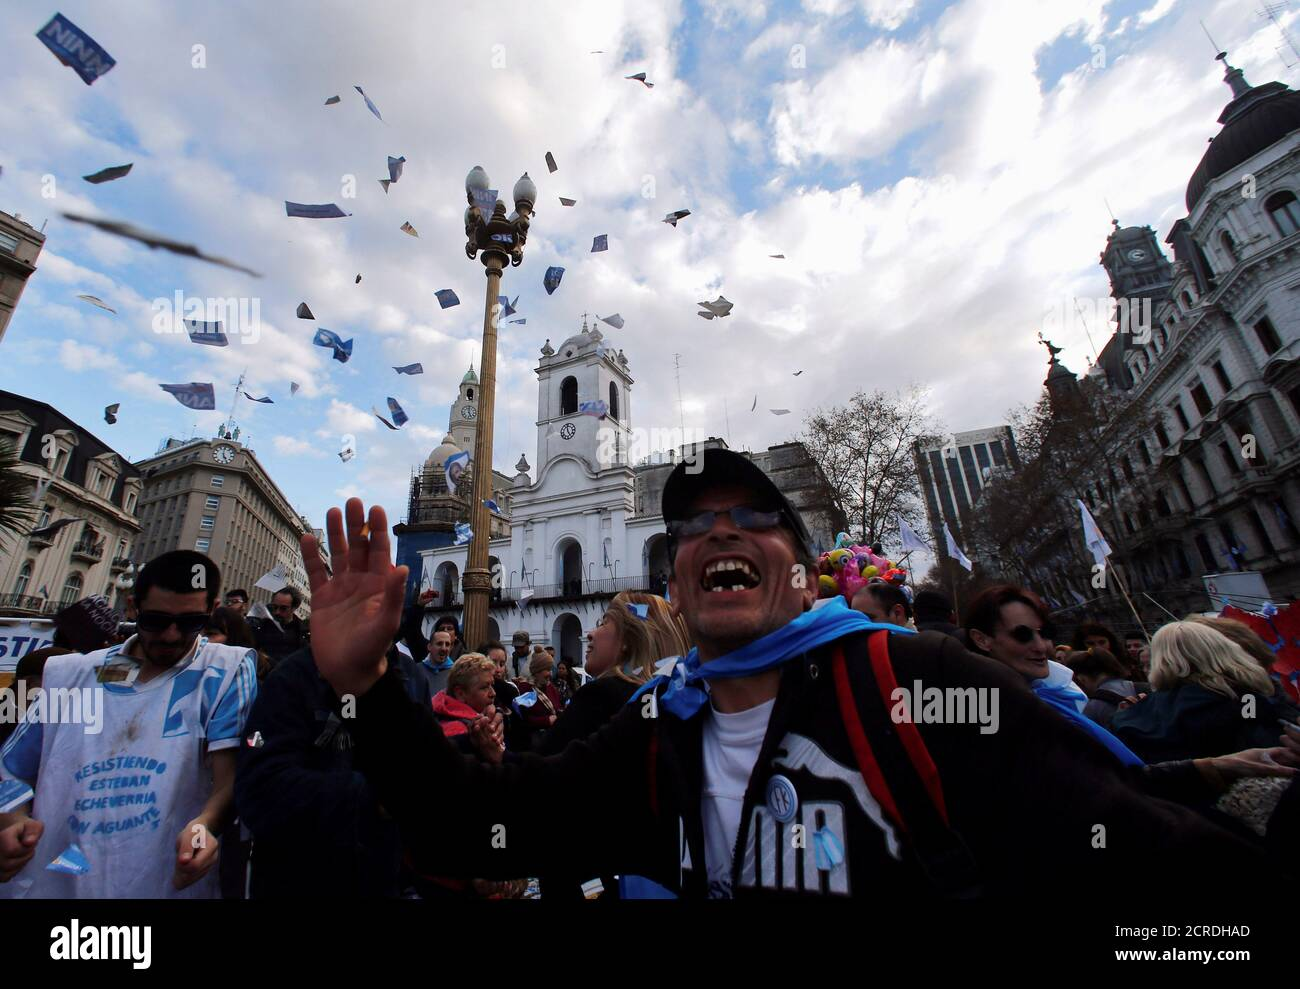 A man dances at Plaza de Mayo square during celebrations of the bicentennial anniversary of Argentina's independence from Spain in Buenos Aires, Argentina, July 9, 2016. REUTERS/Marcos Brindicci Stock Photo